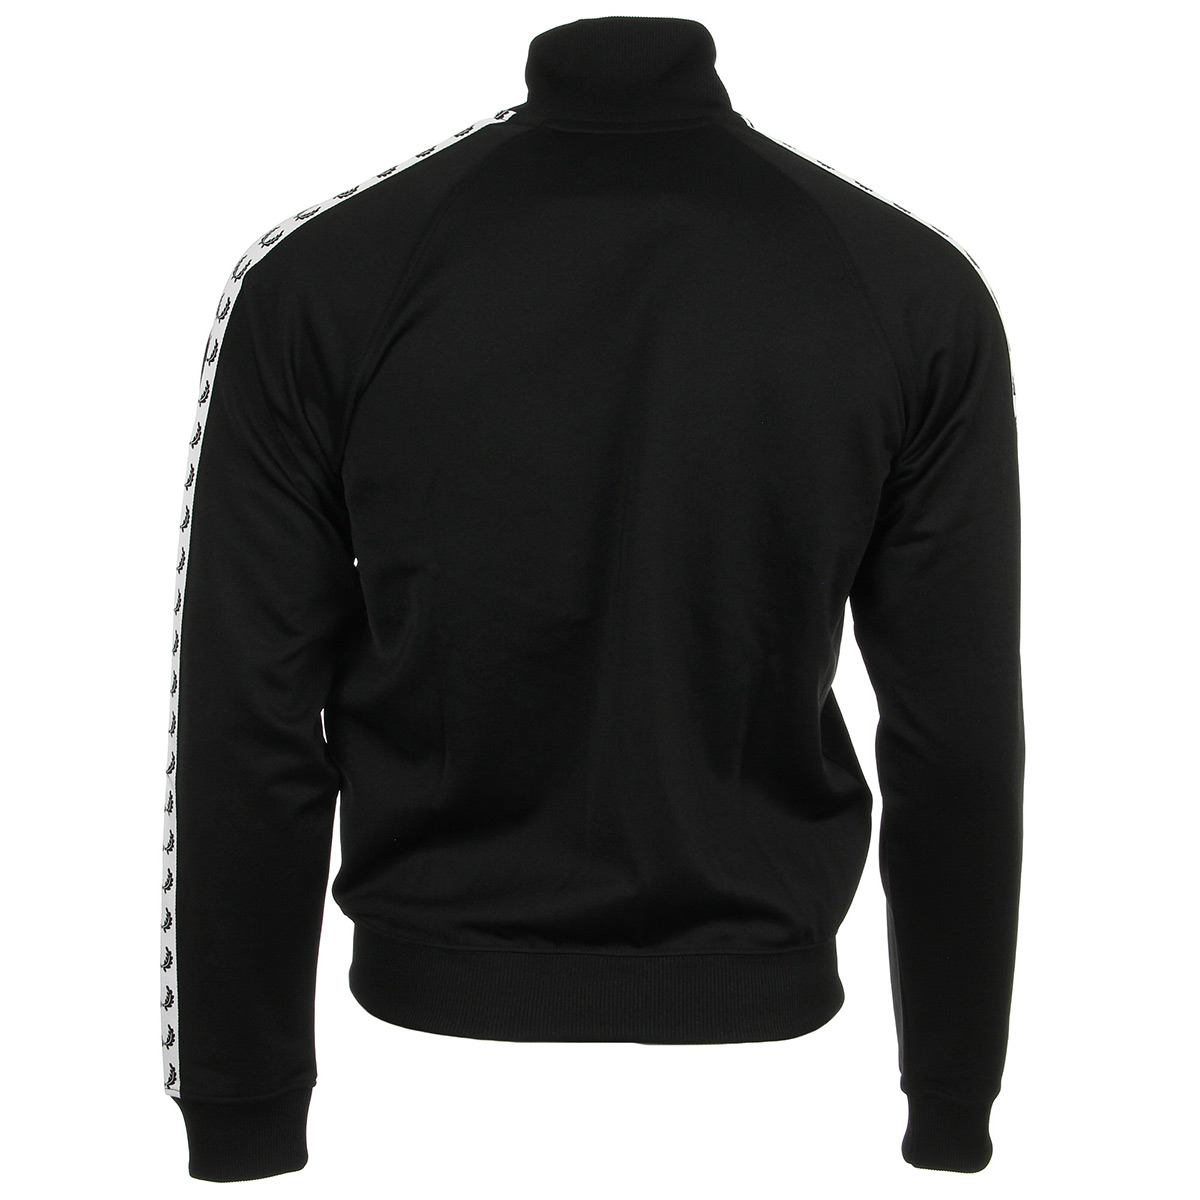 Fred Perry Taped Track Jacket Black J6231102, Vestes sport homme